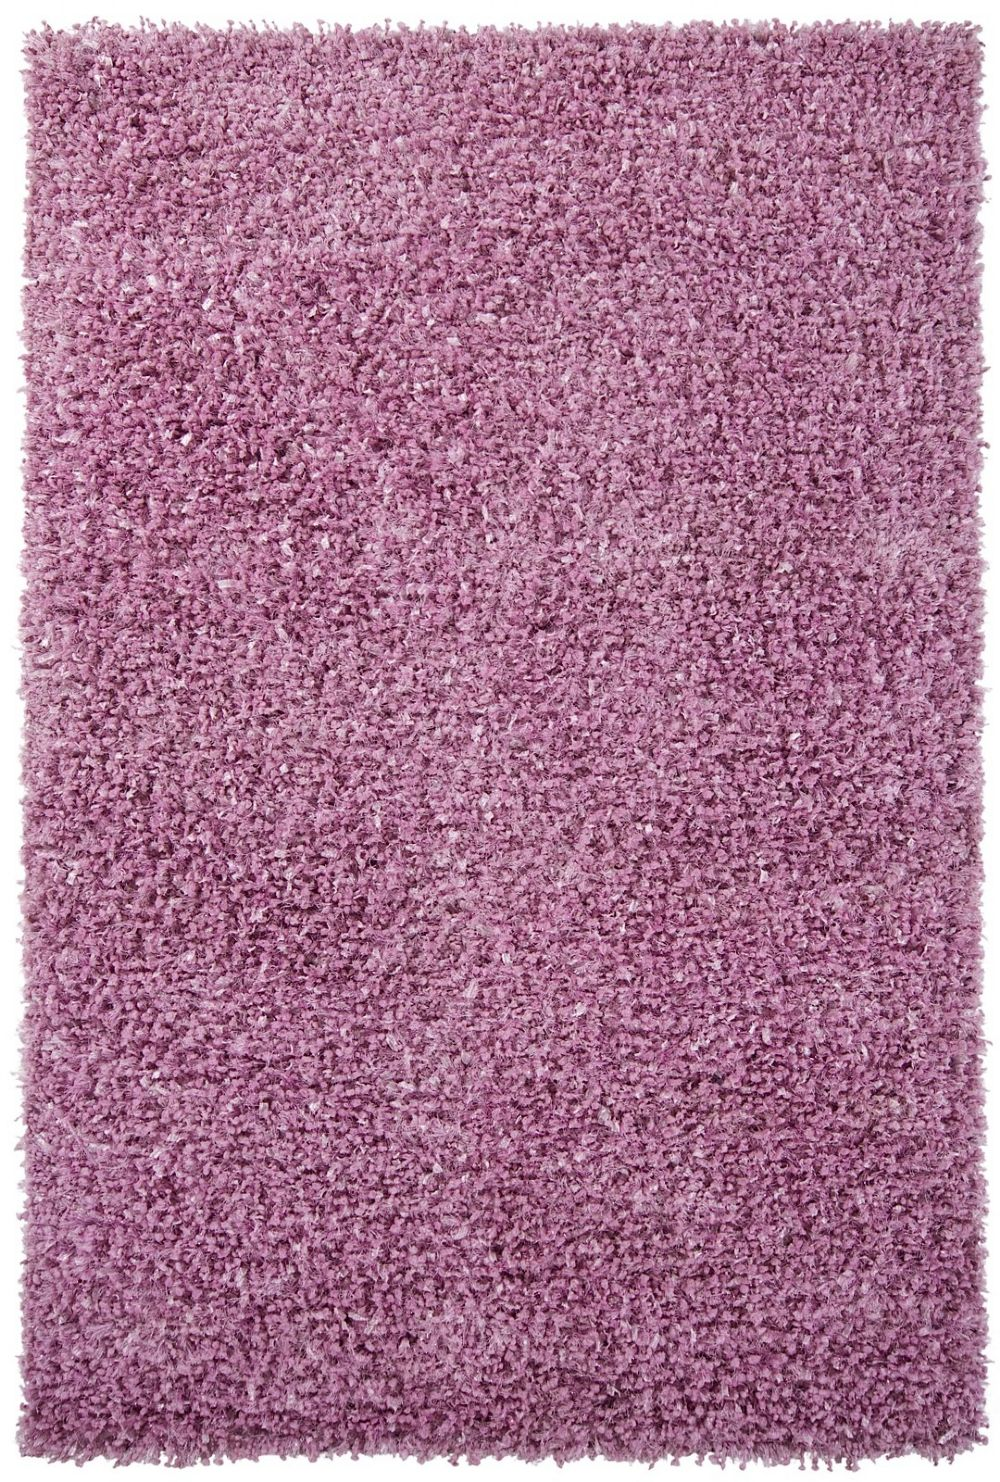 chandra riza shag area rug collection